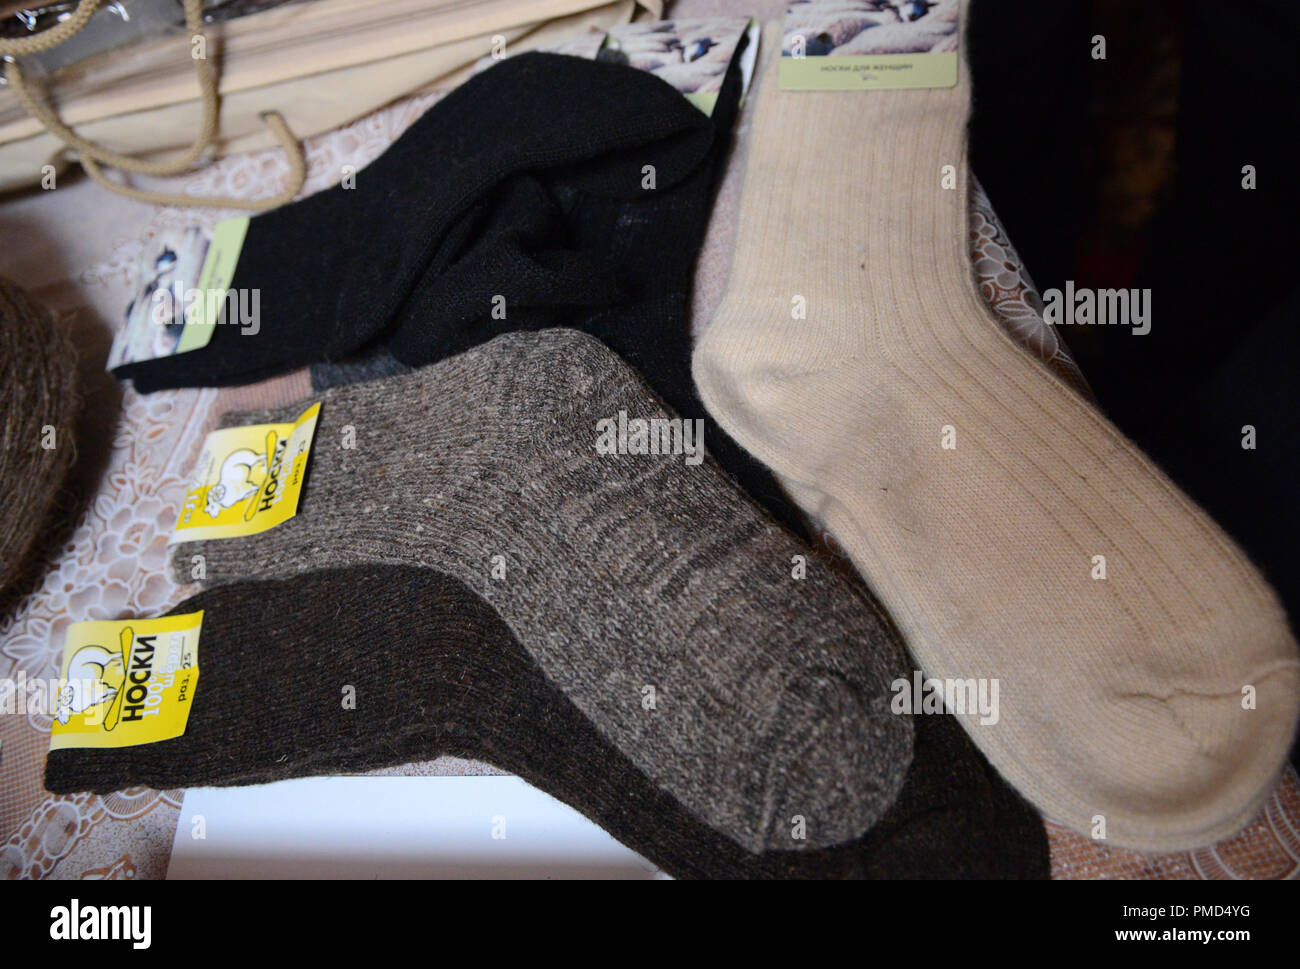 f1bcb3807deca Socks made from sheared camel wool, Astrakhan region, Russia. - Stock Image